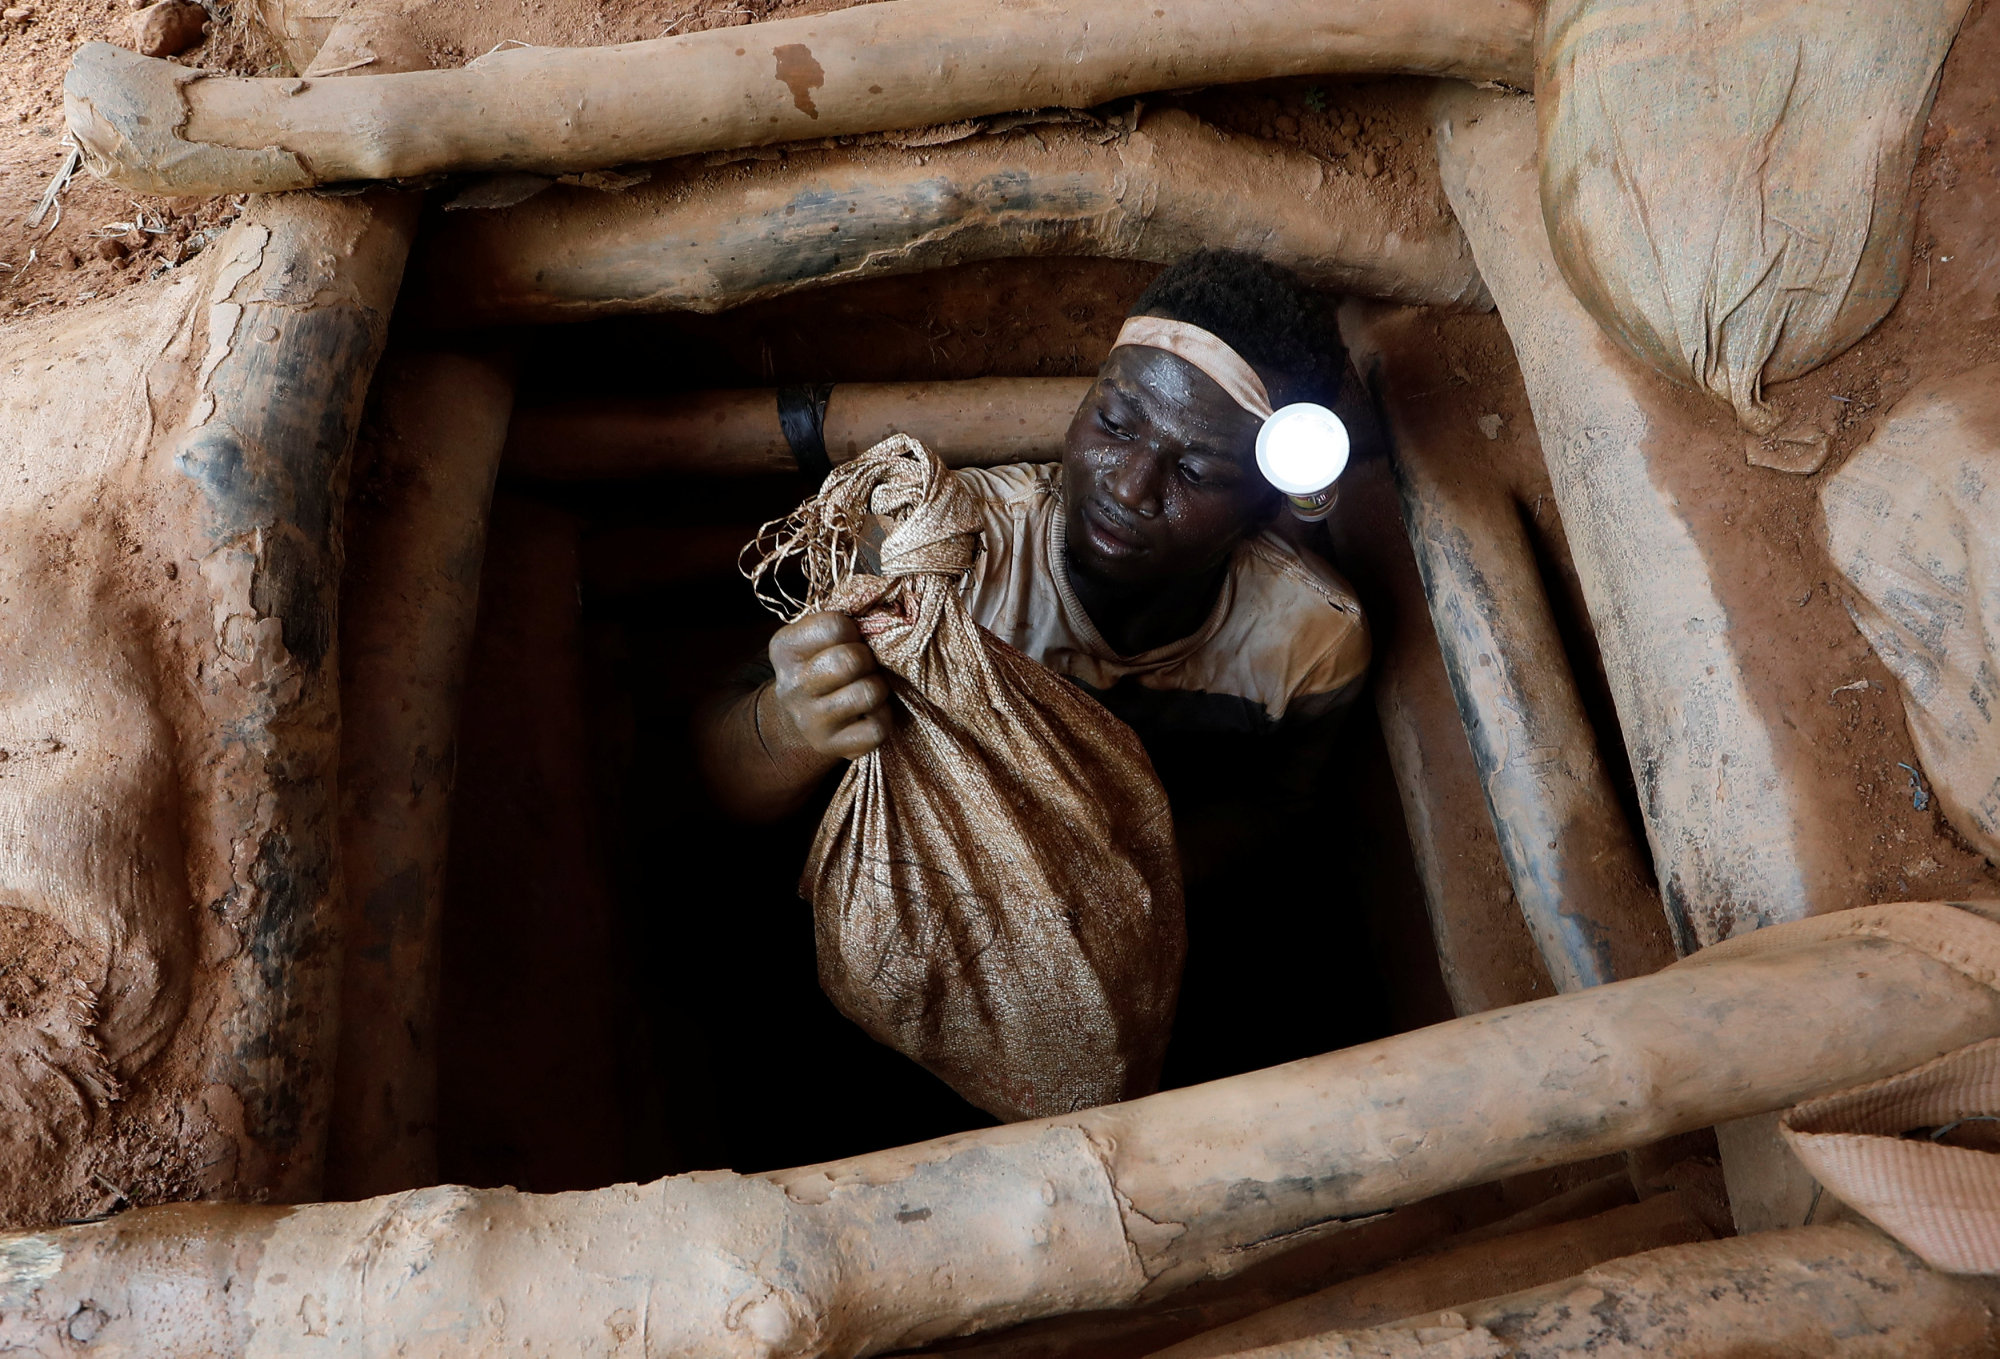 An artisanal miner climbs out of a gold mine with a bag of rocks broken off from inside the mining pit at the unlicensed mining site of Nsuaem Top in Ghana in November. | REUTERS